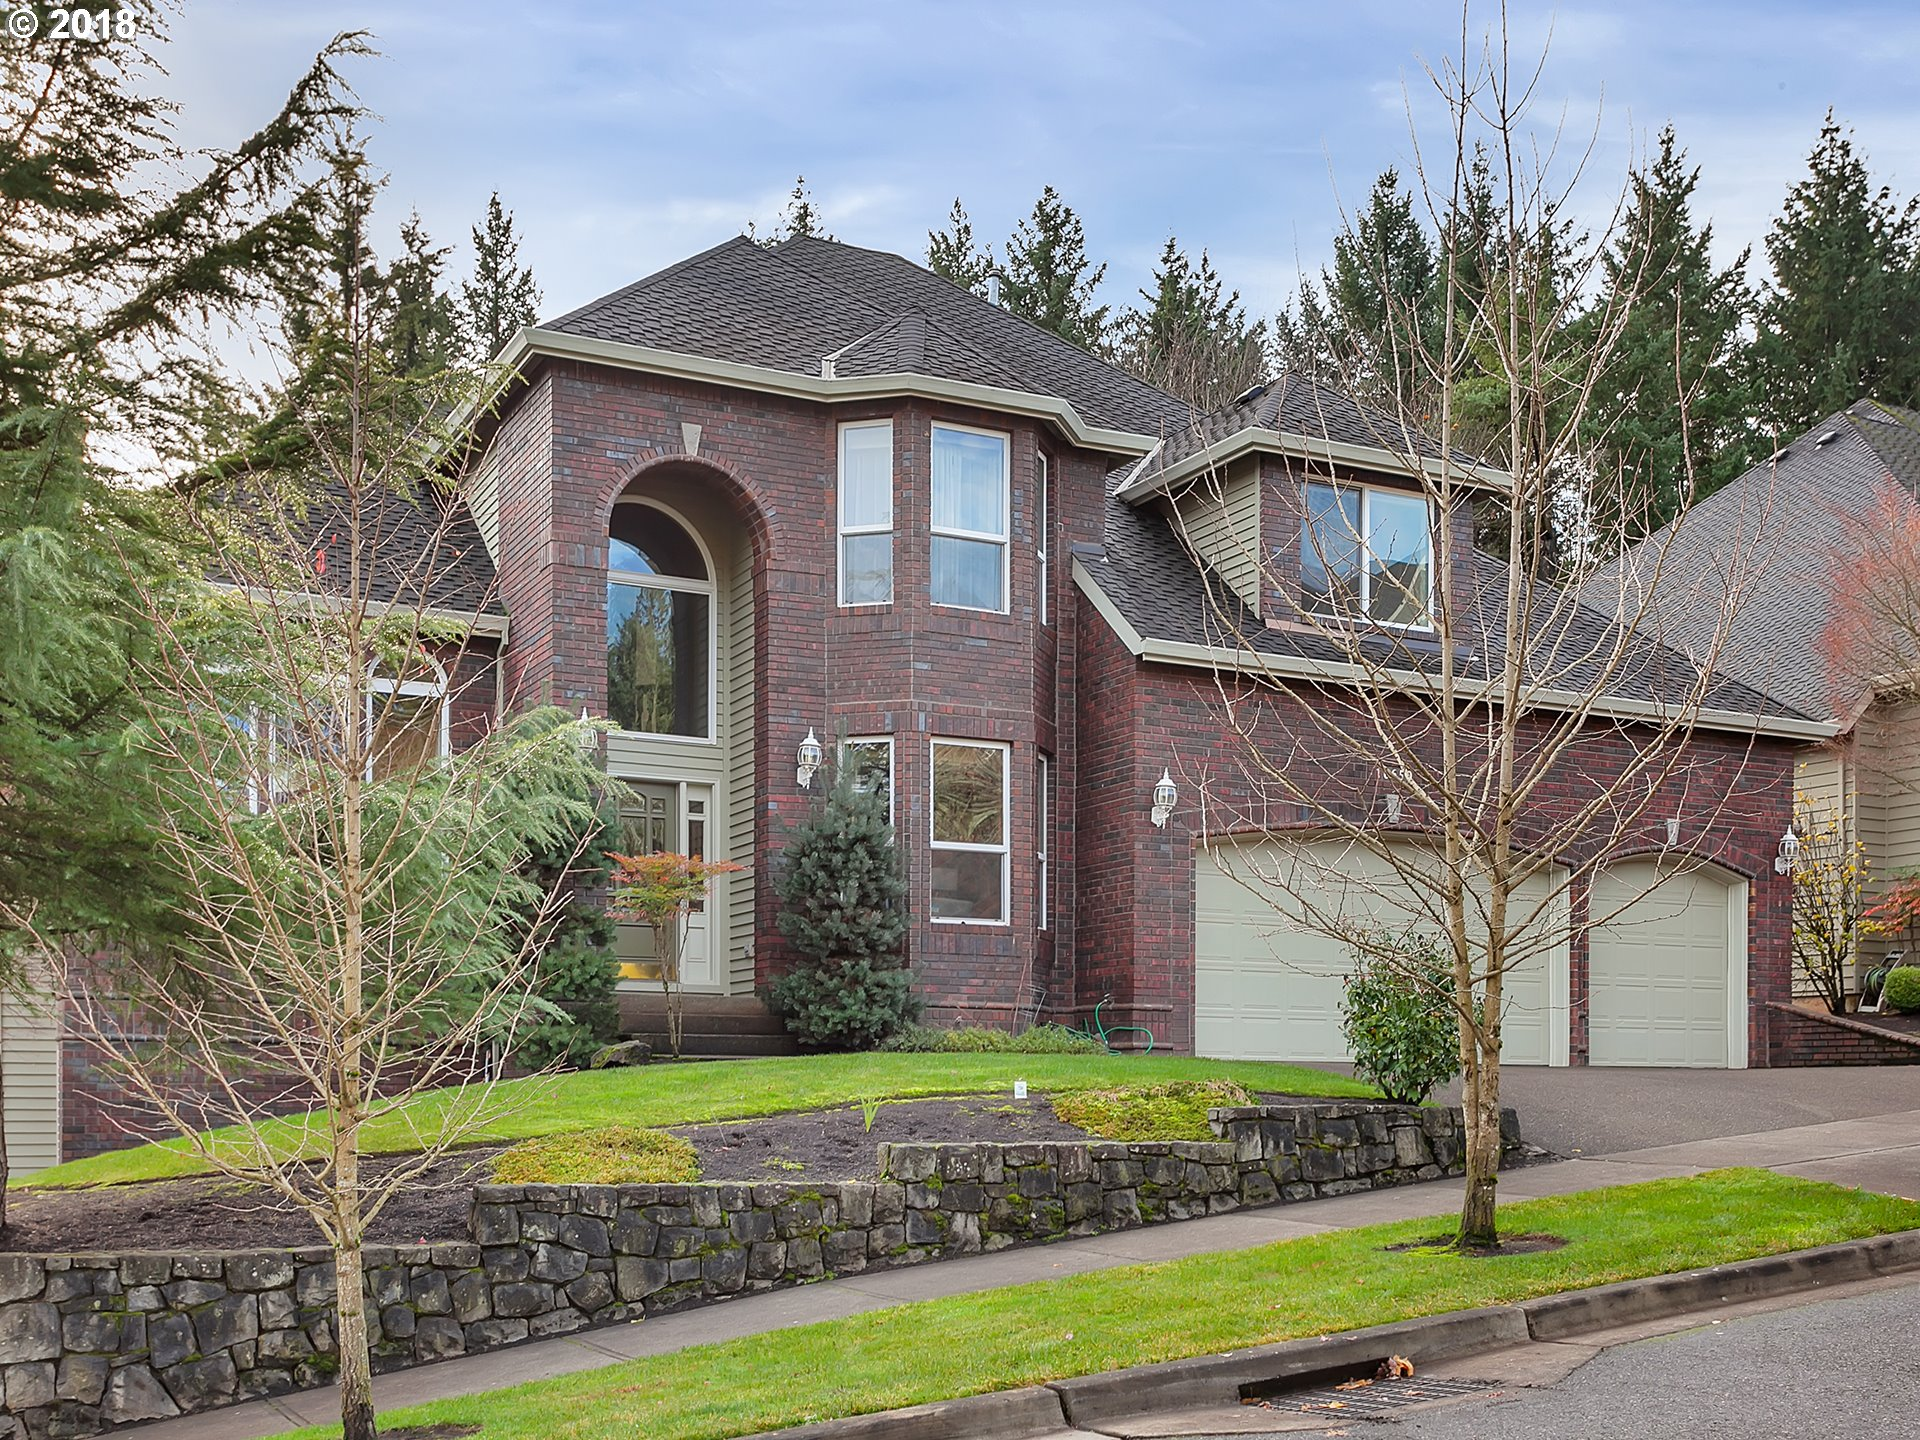 Fantastic Murray Hill Park Luxury Home. This spacious home, which backs to greenspace, features custom cherry woodwork, high ceilings and elegant wainscoting. The large gourmet kitchen features slab granite counters, roomy center island cook top and stainless appliances.  In addition to 6 large bedrooms and den, other highlights include a  lower level with second family/bonus room, wet bar, 2 bedrooms, full bath, and walk out to patio.